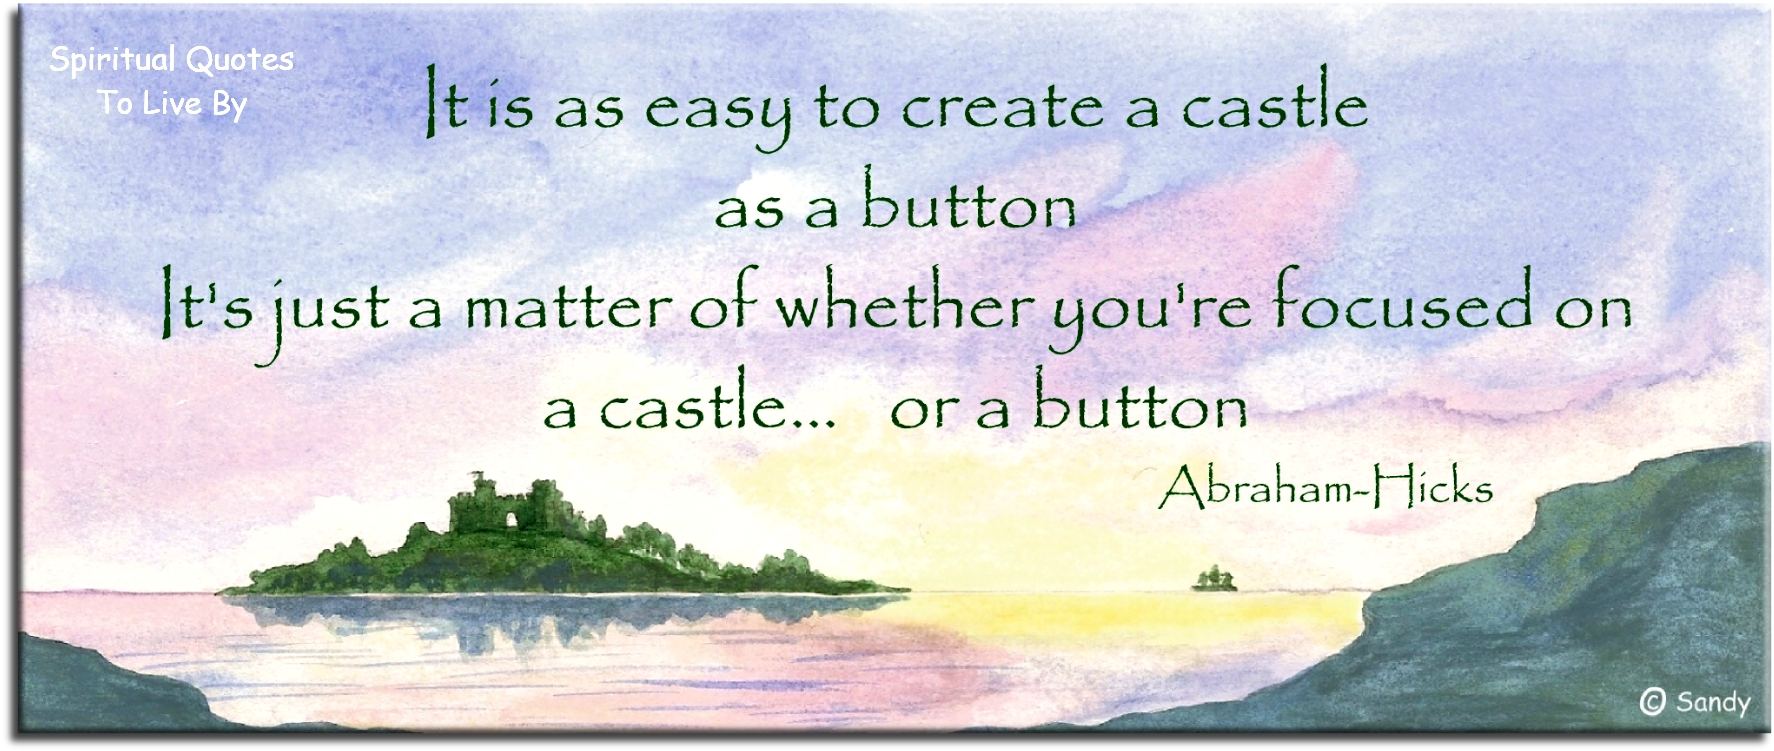 Abraham-Hicks quote: It is as easy to create a castle as a button. It's just a matter of whether you're focused on a castle or a button. - Spiritual Quotes To Live By